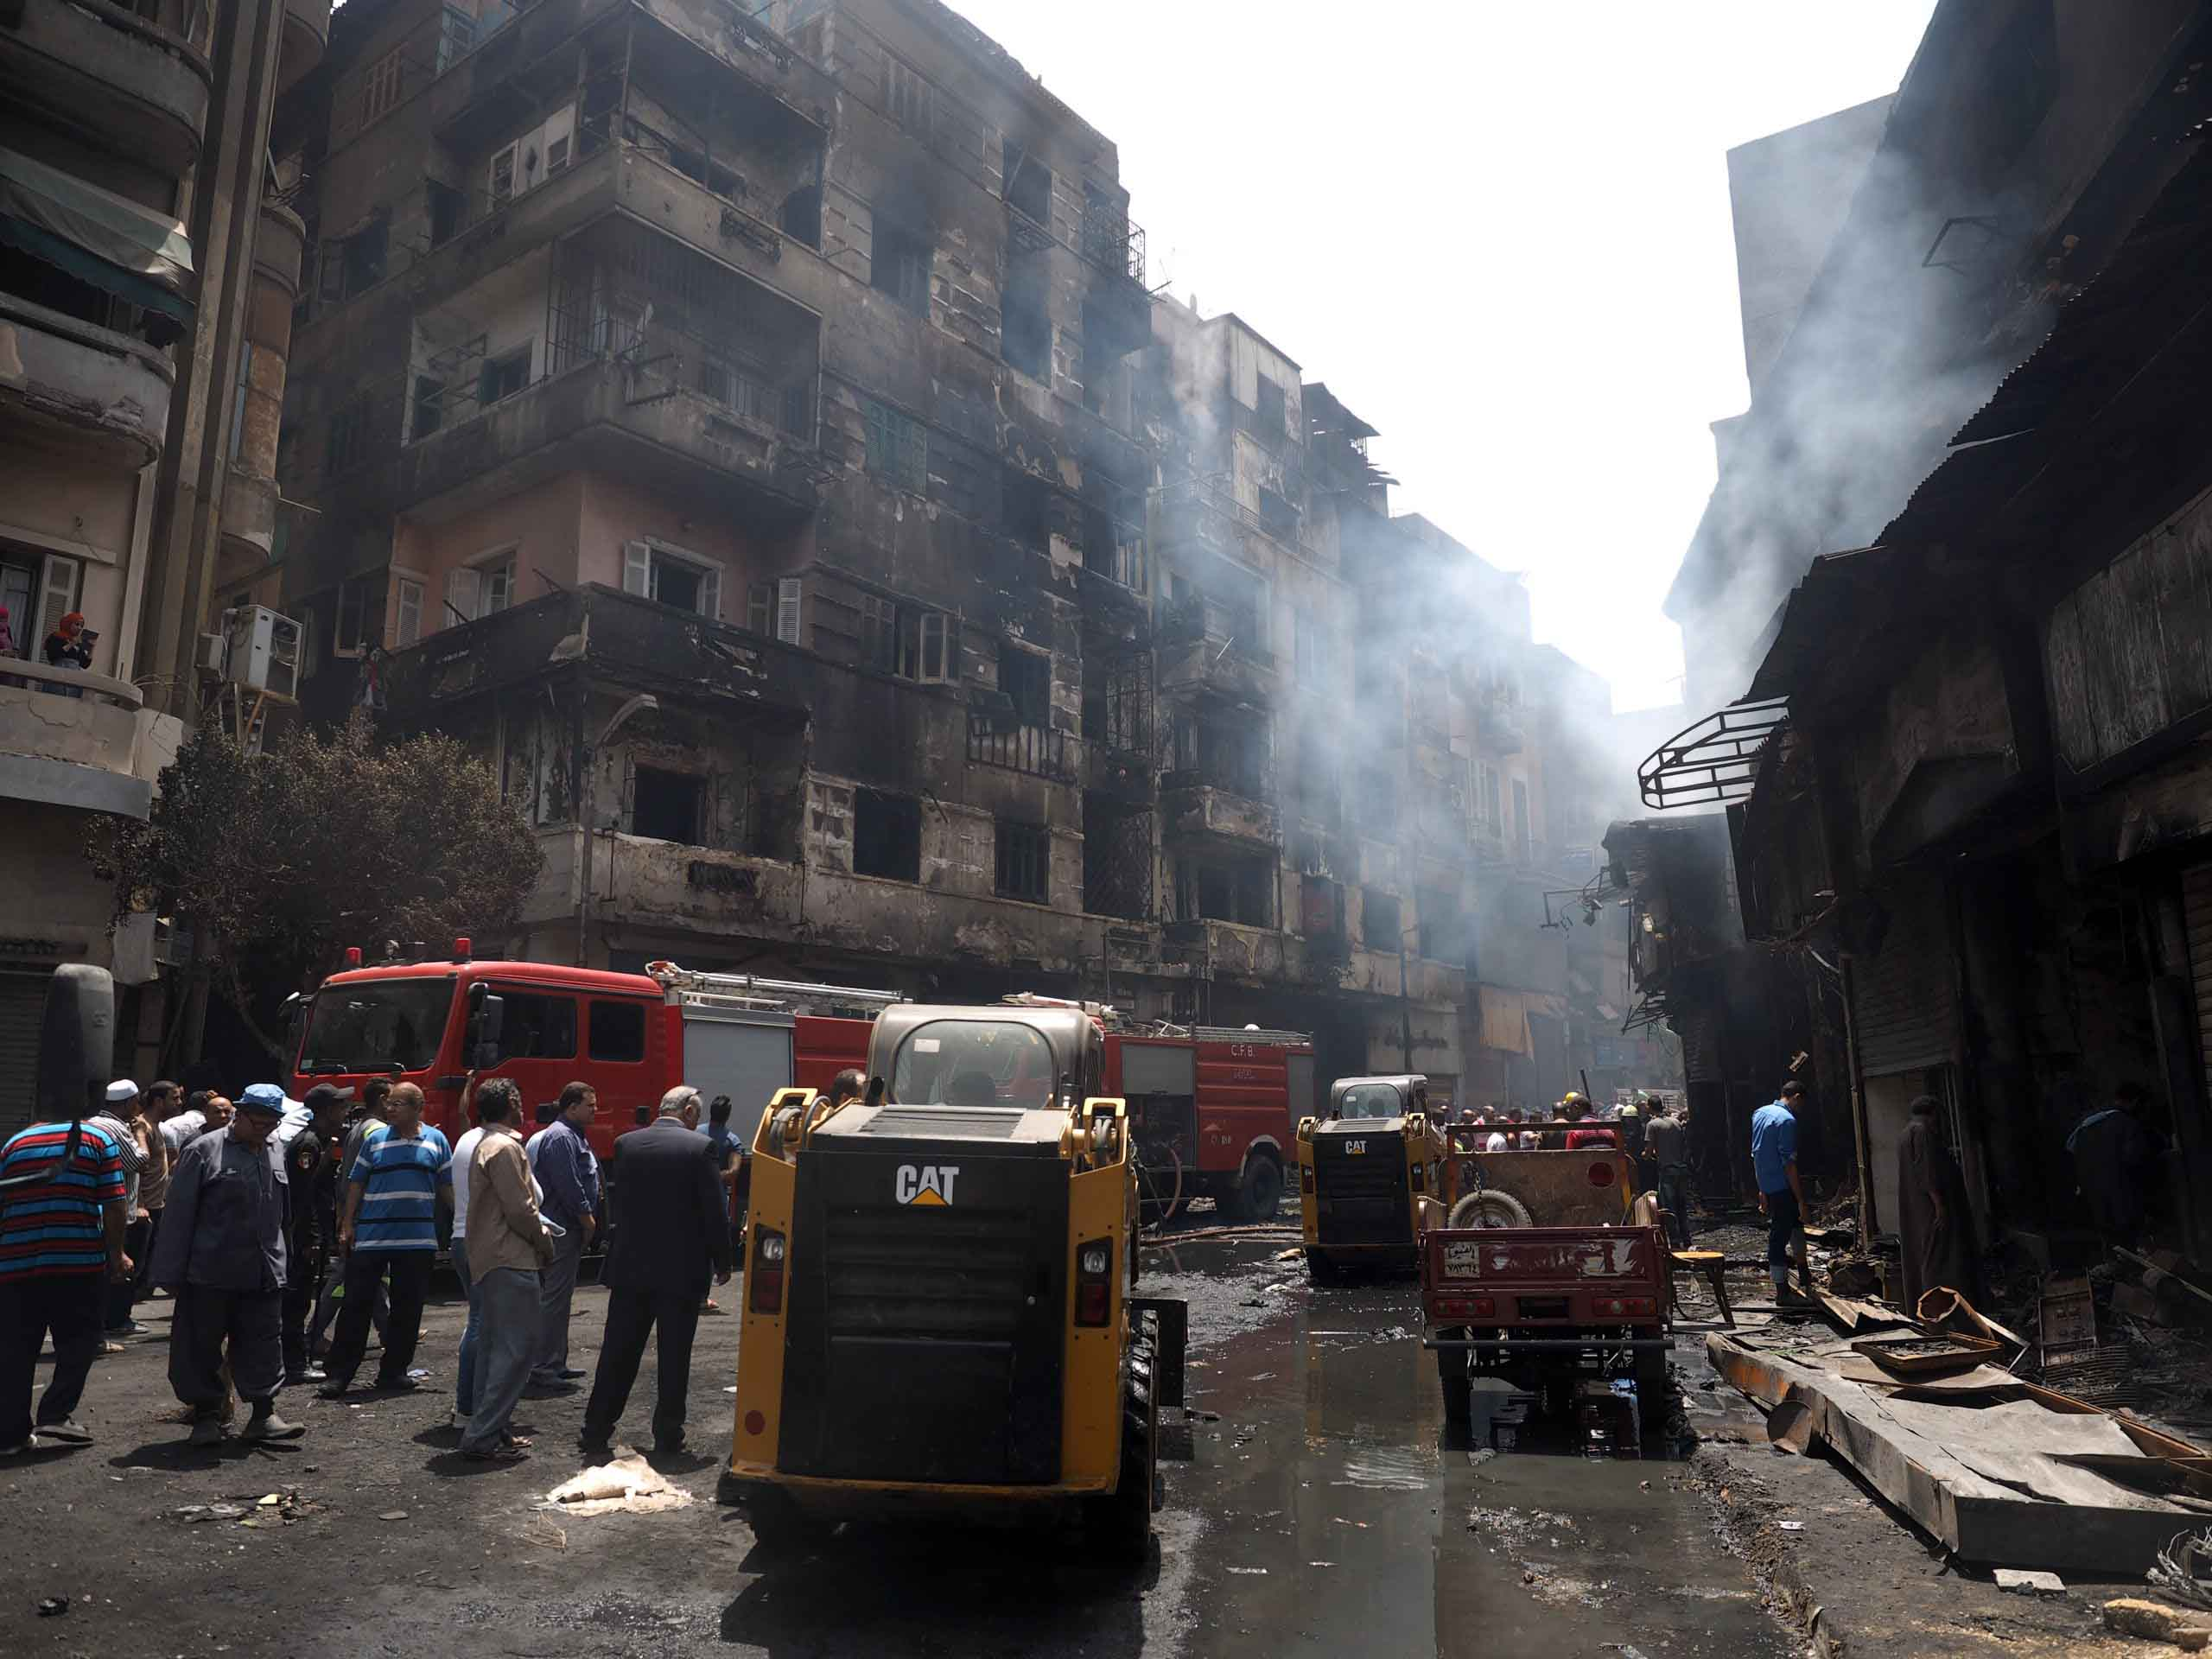 Local media estimates this fire destroyed hundreds of apartments and businesses among the roughly $45 million in property loses in Cairo on May 11, 2016.  (VOA/Hamada Elrasam)